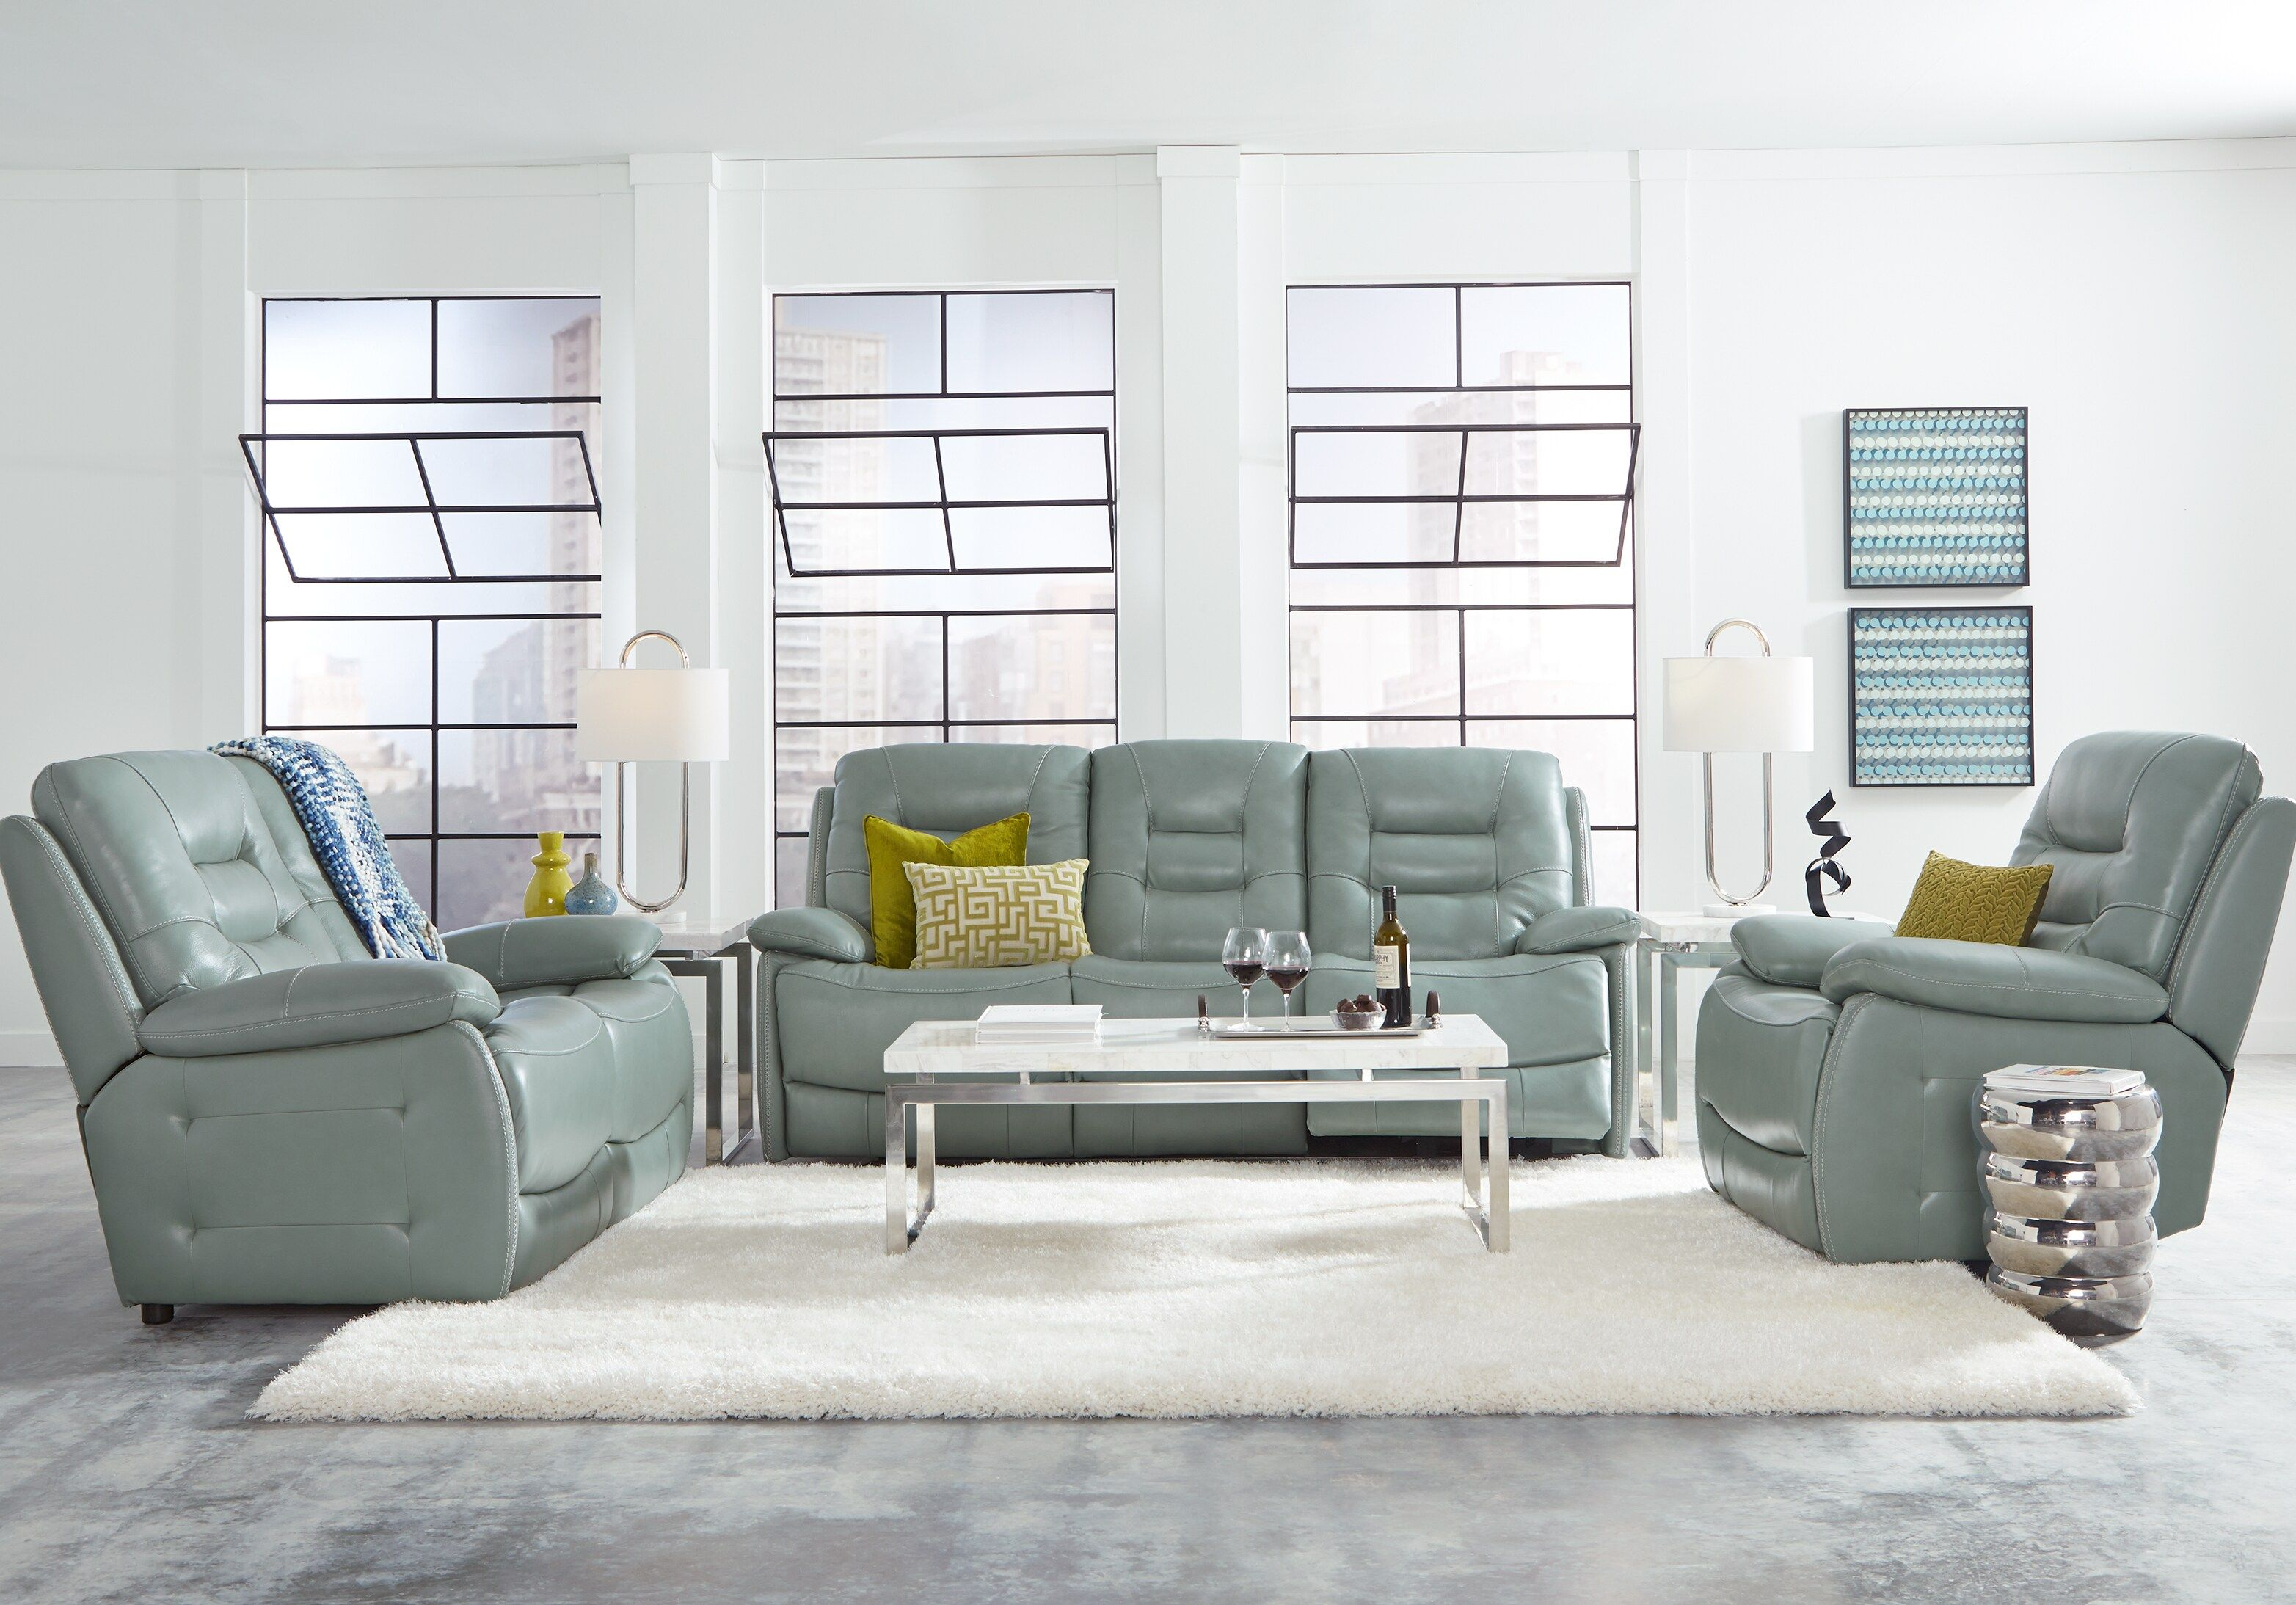 31++ Leather living room sets at rooms to go info